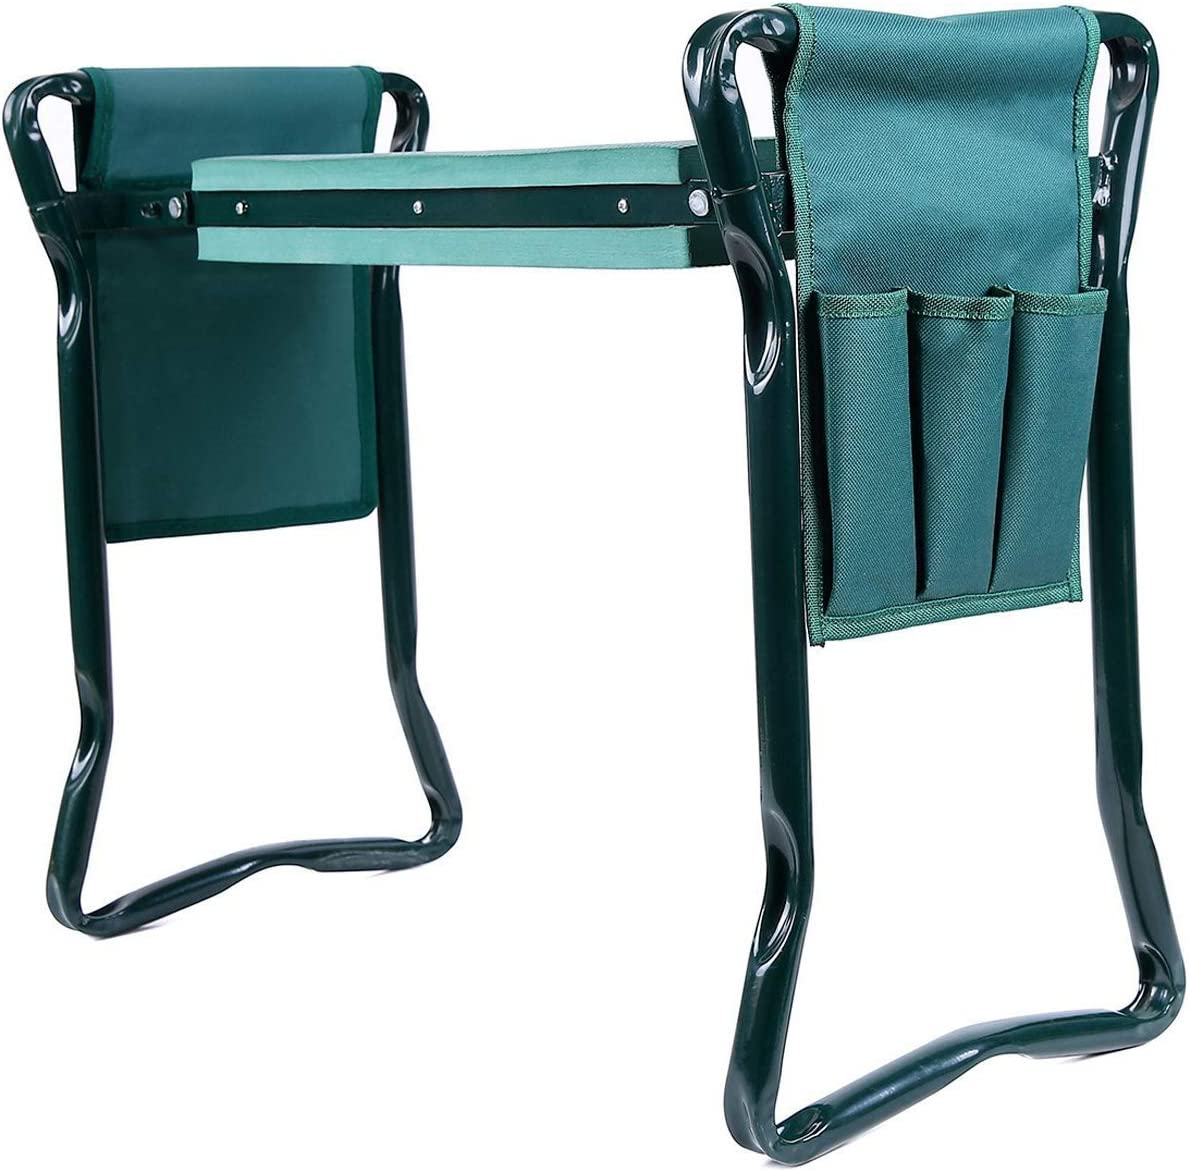 Ohuhu Garden Kneeler and Seat with 2 Tool Pouches